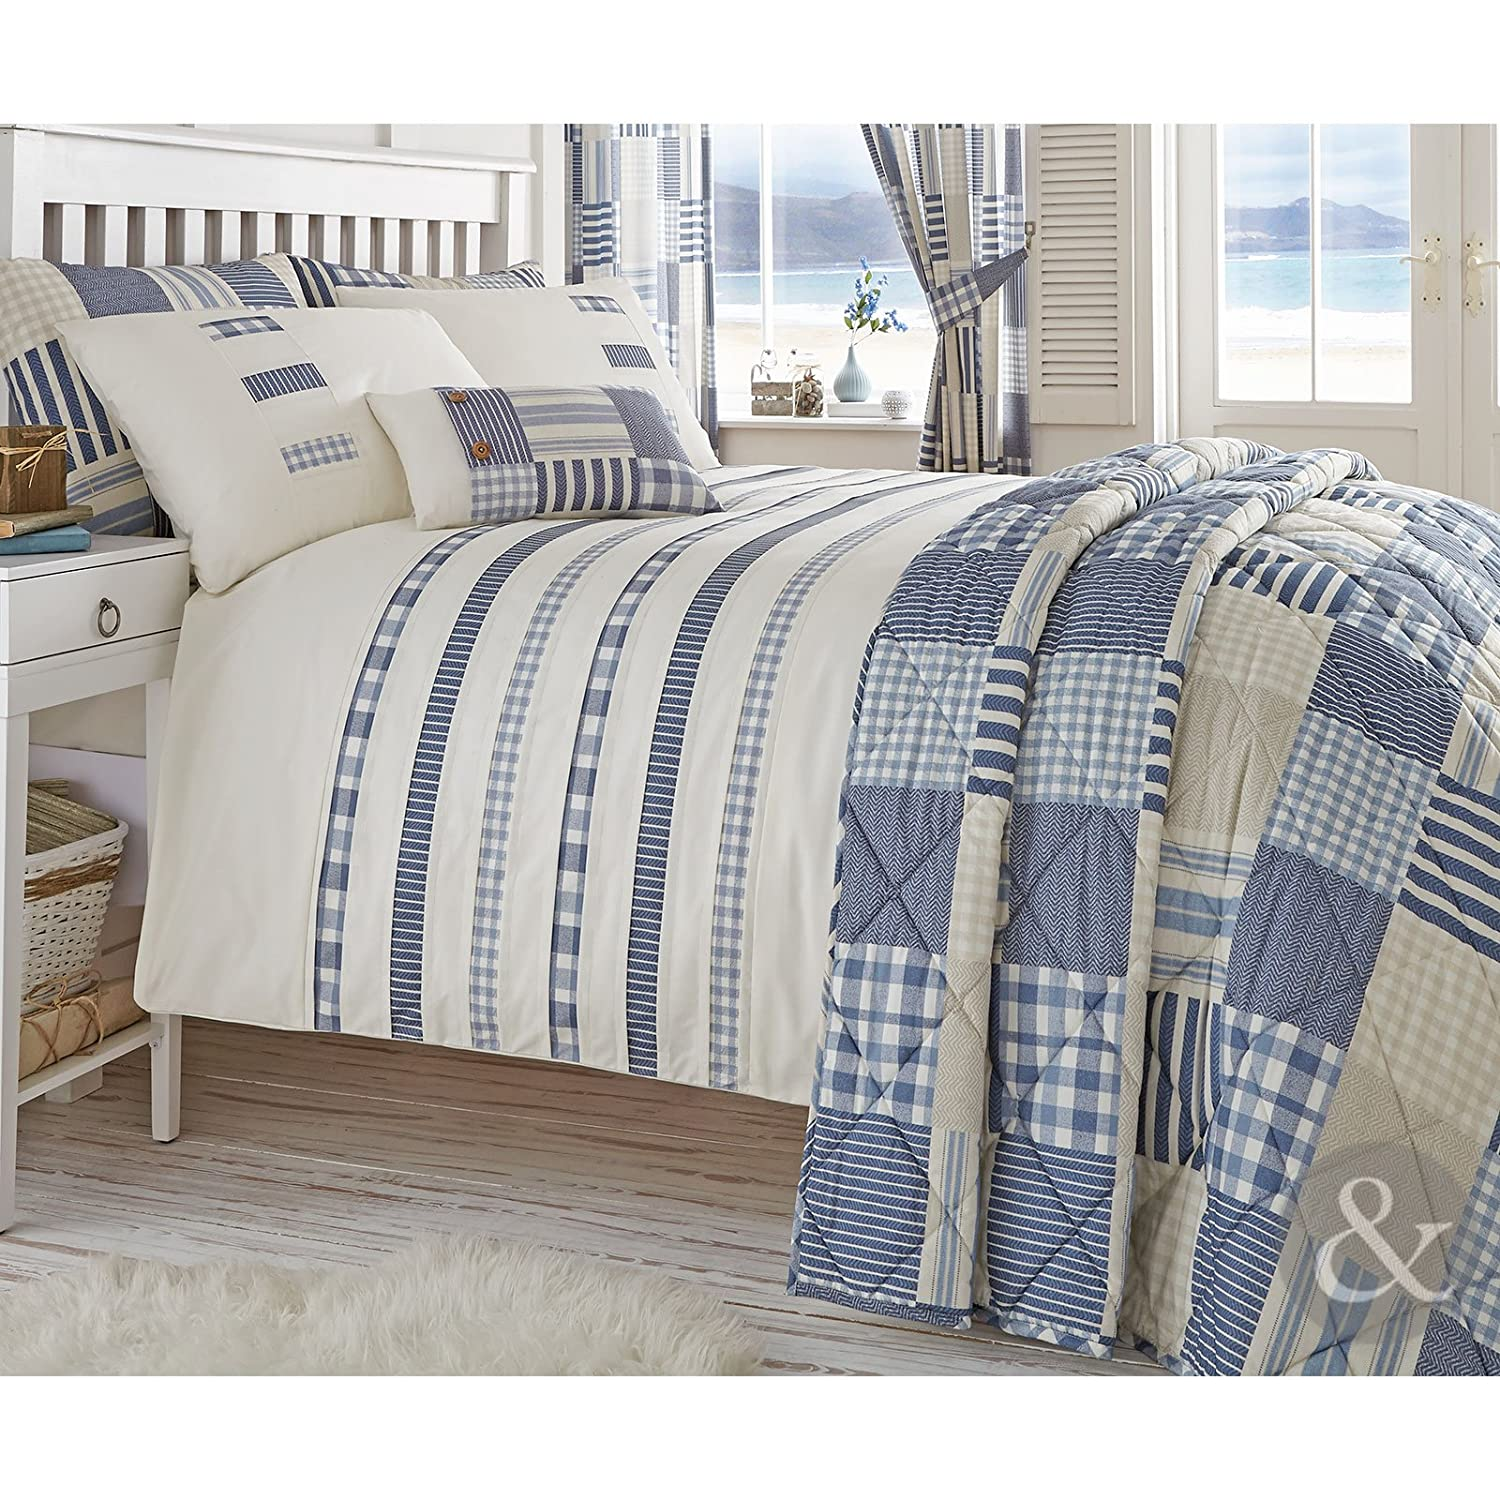 for comforters graceful and sets captivating bedspreads steel grey factor blue set comforter bedding plan amazing bed